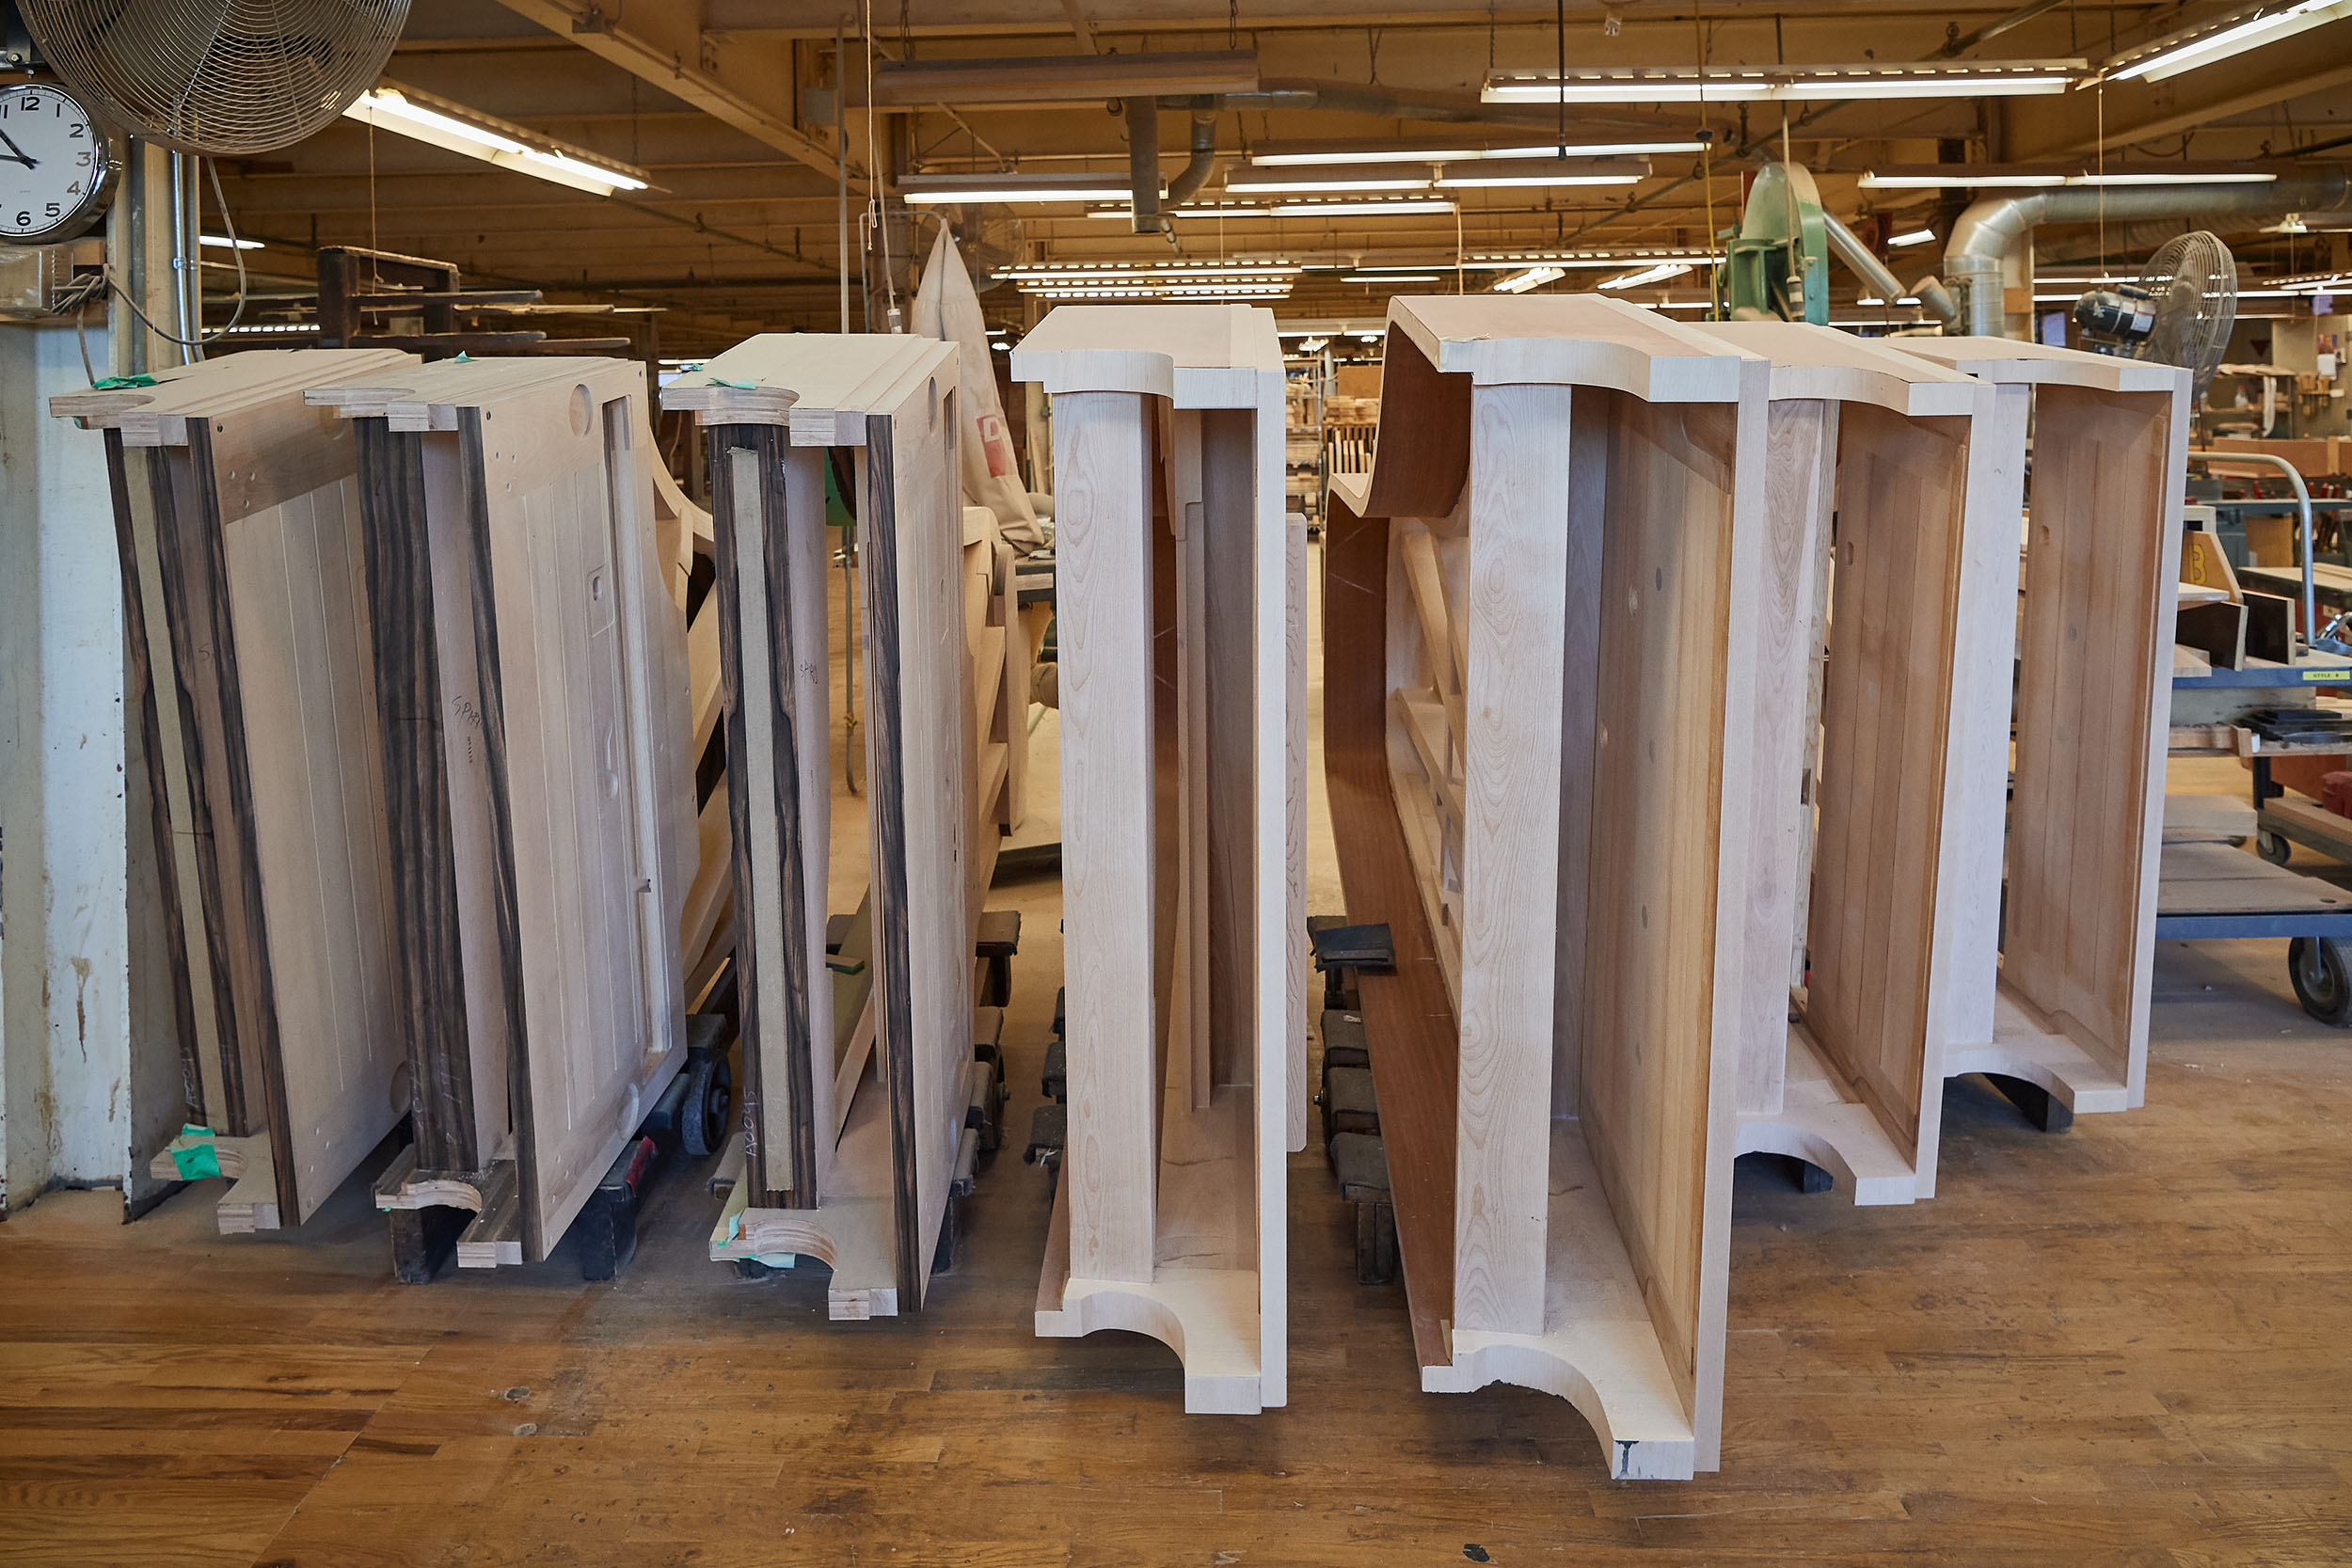 Pianos wait for laminate to be applied